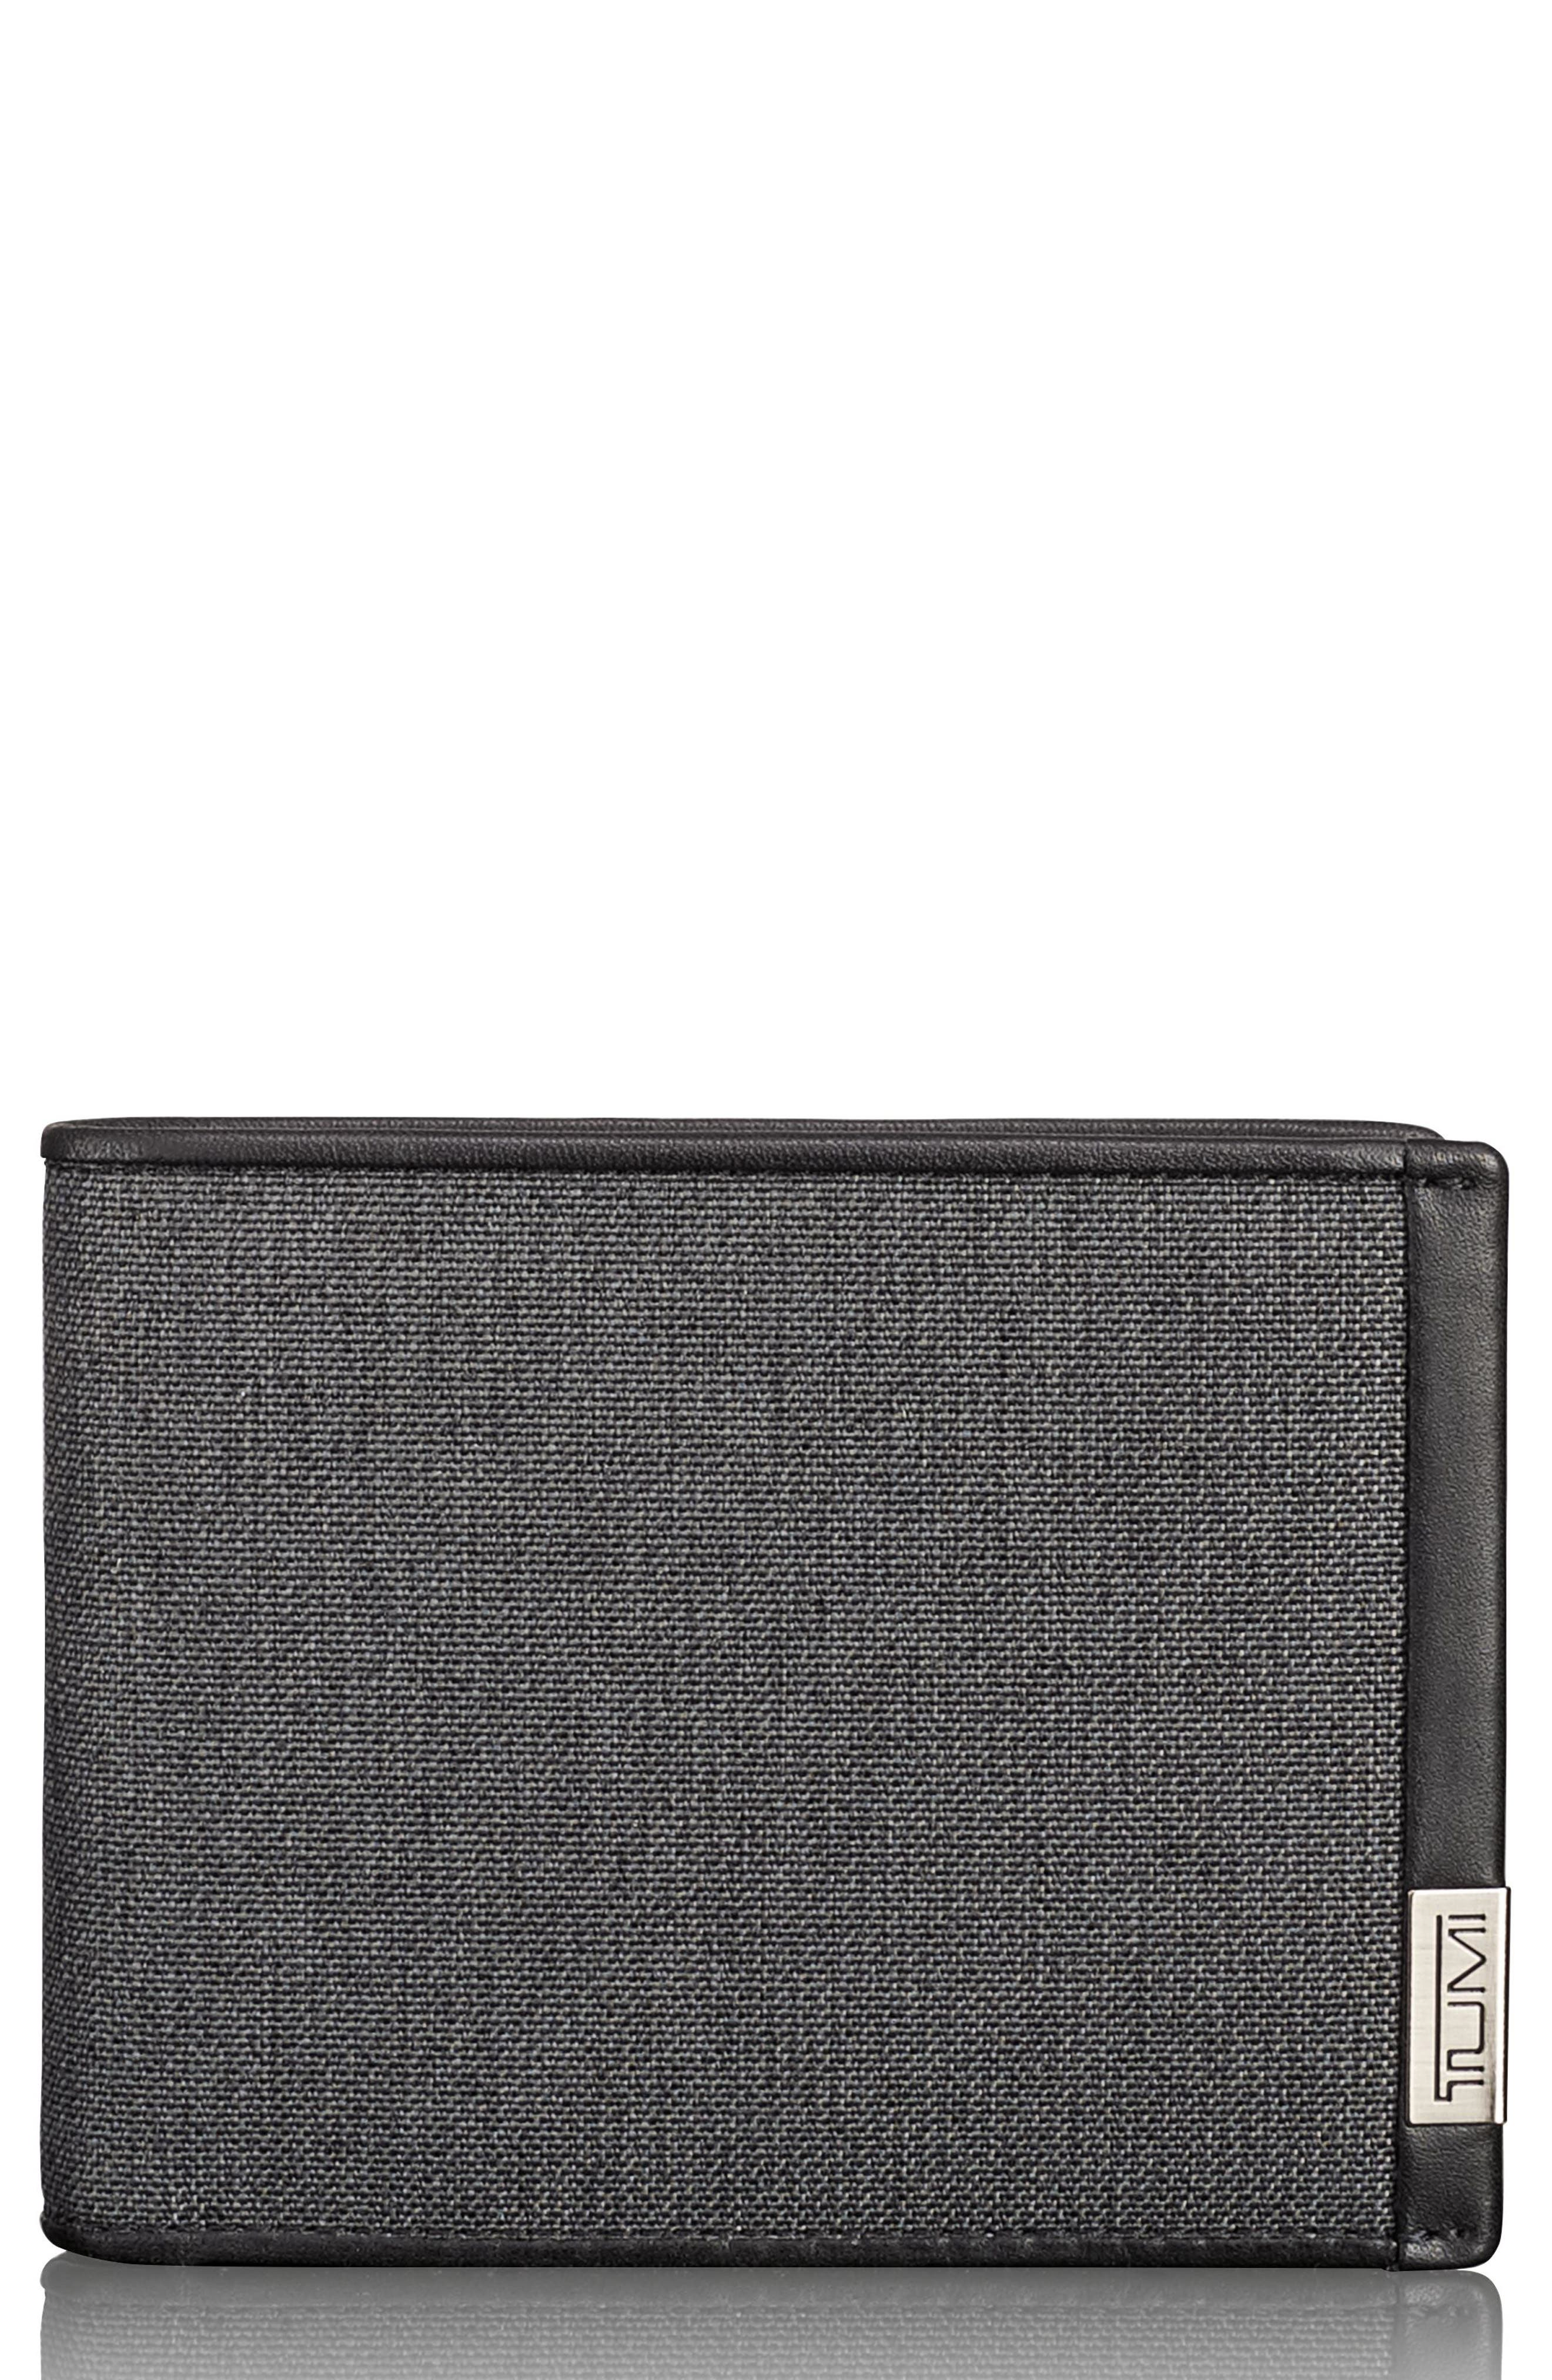 Alpha Global Wallet,                             Main thumbnail 1, color,                             ANTHRACITE/ BLACK